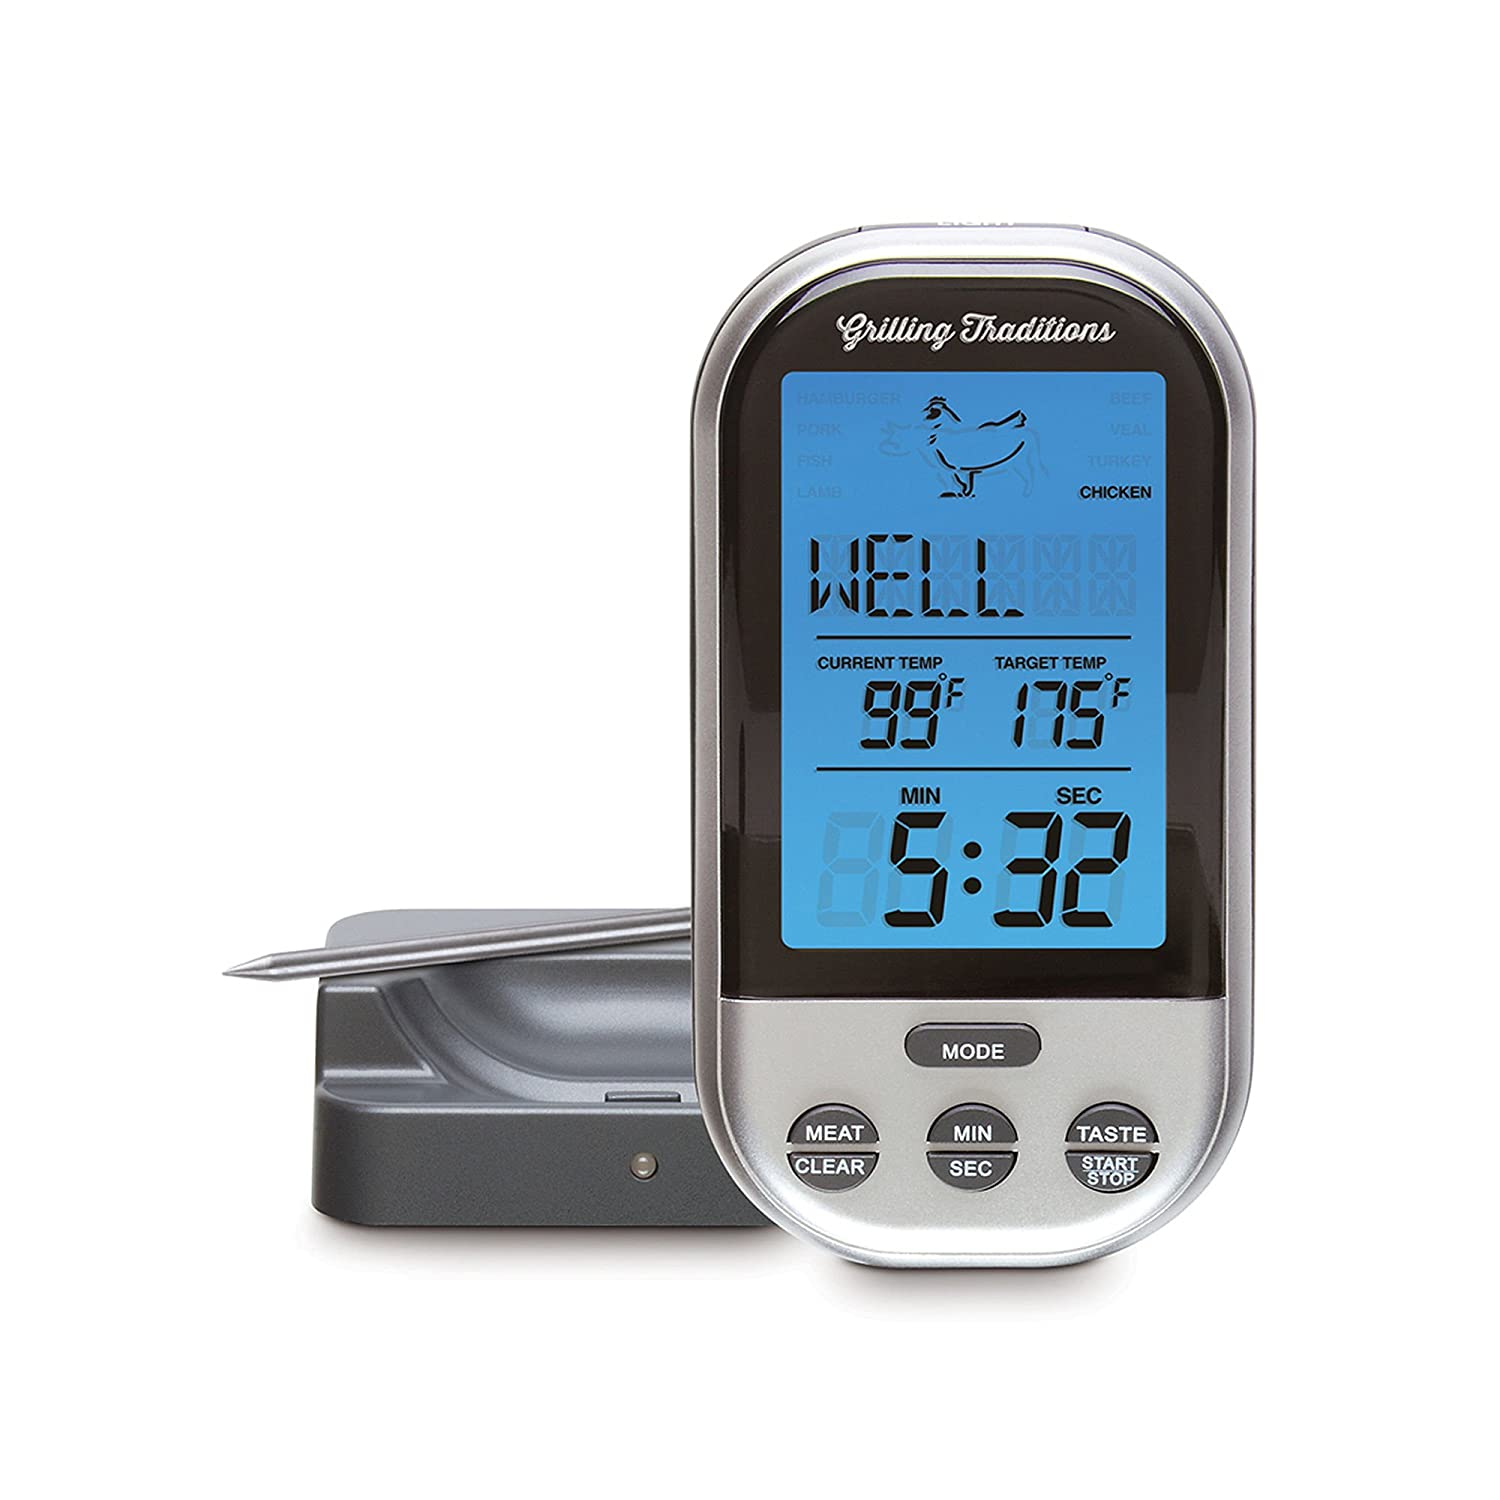 Amazon.com : Grilling Traditions Wireless Grill Thermometer : Garden U0026  Outdoor